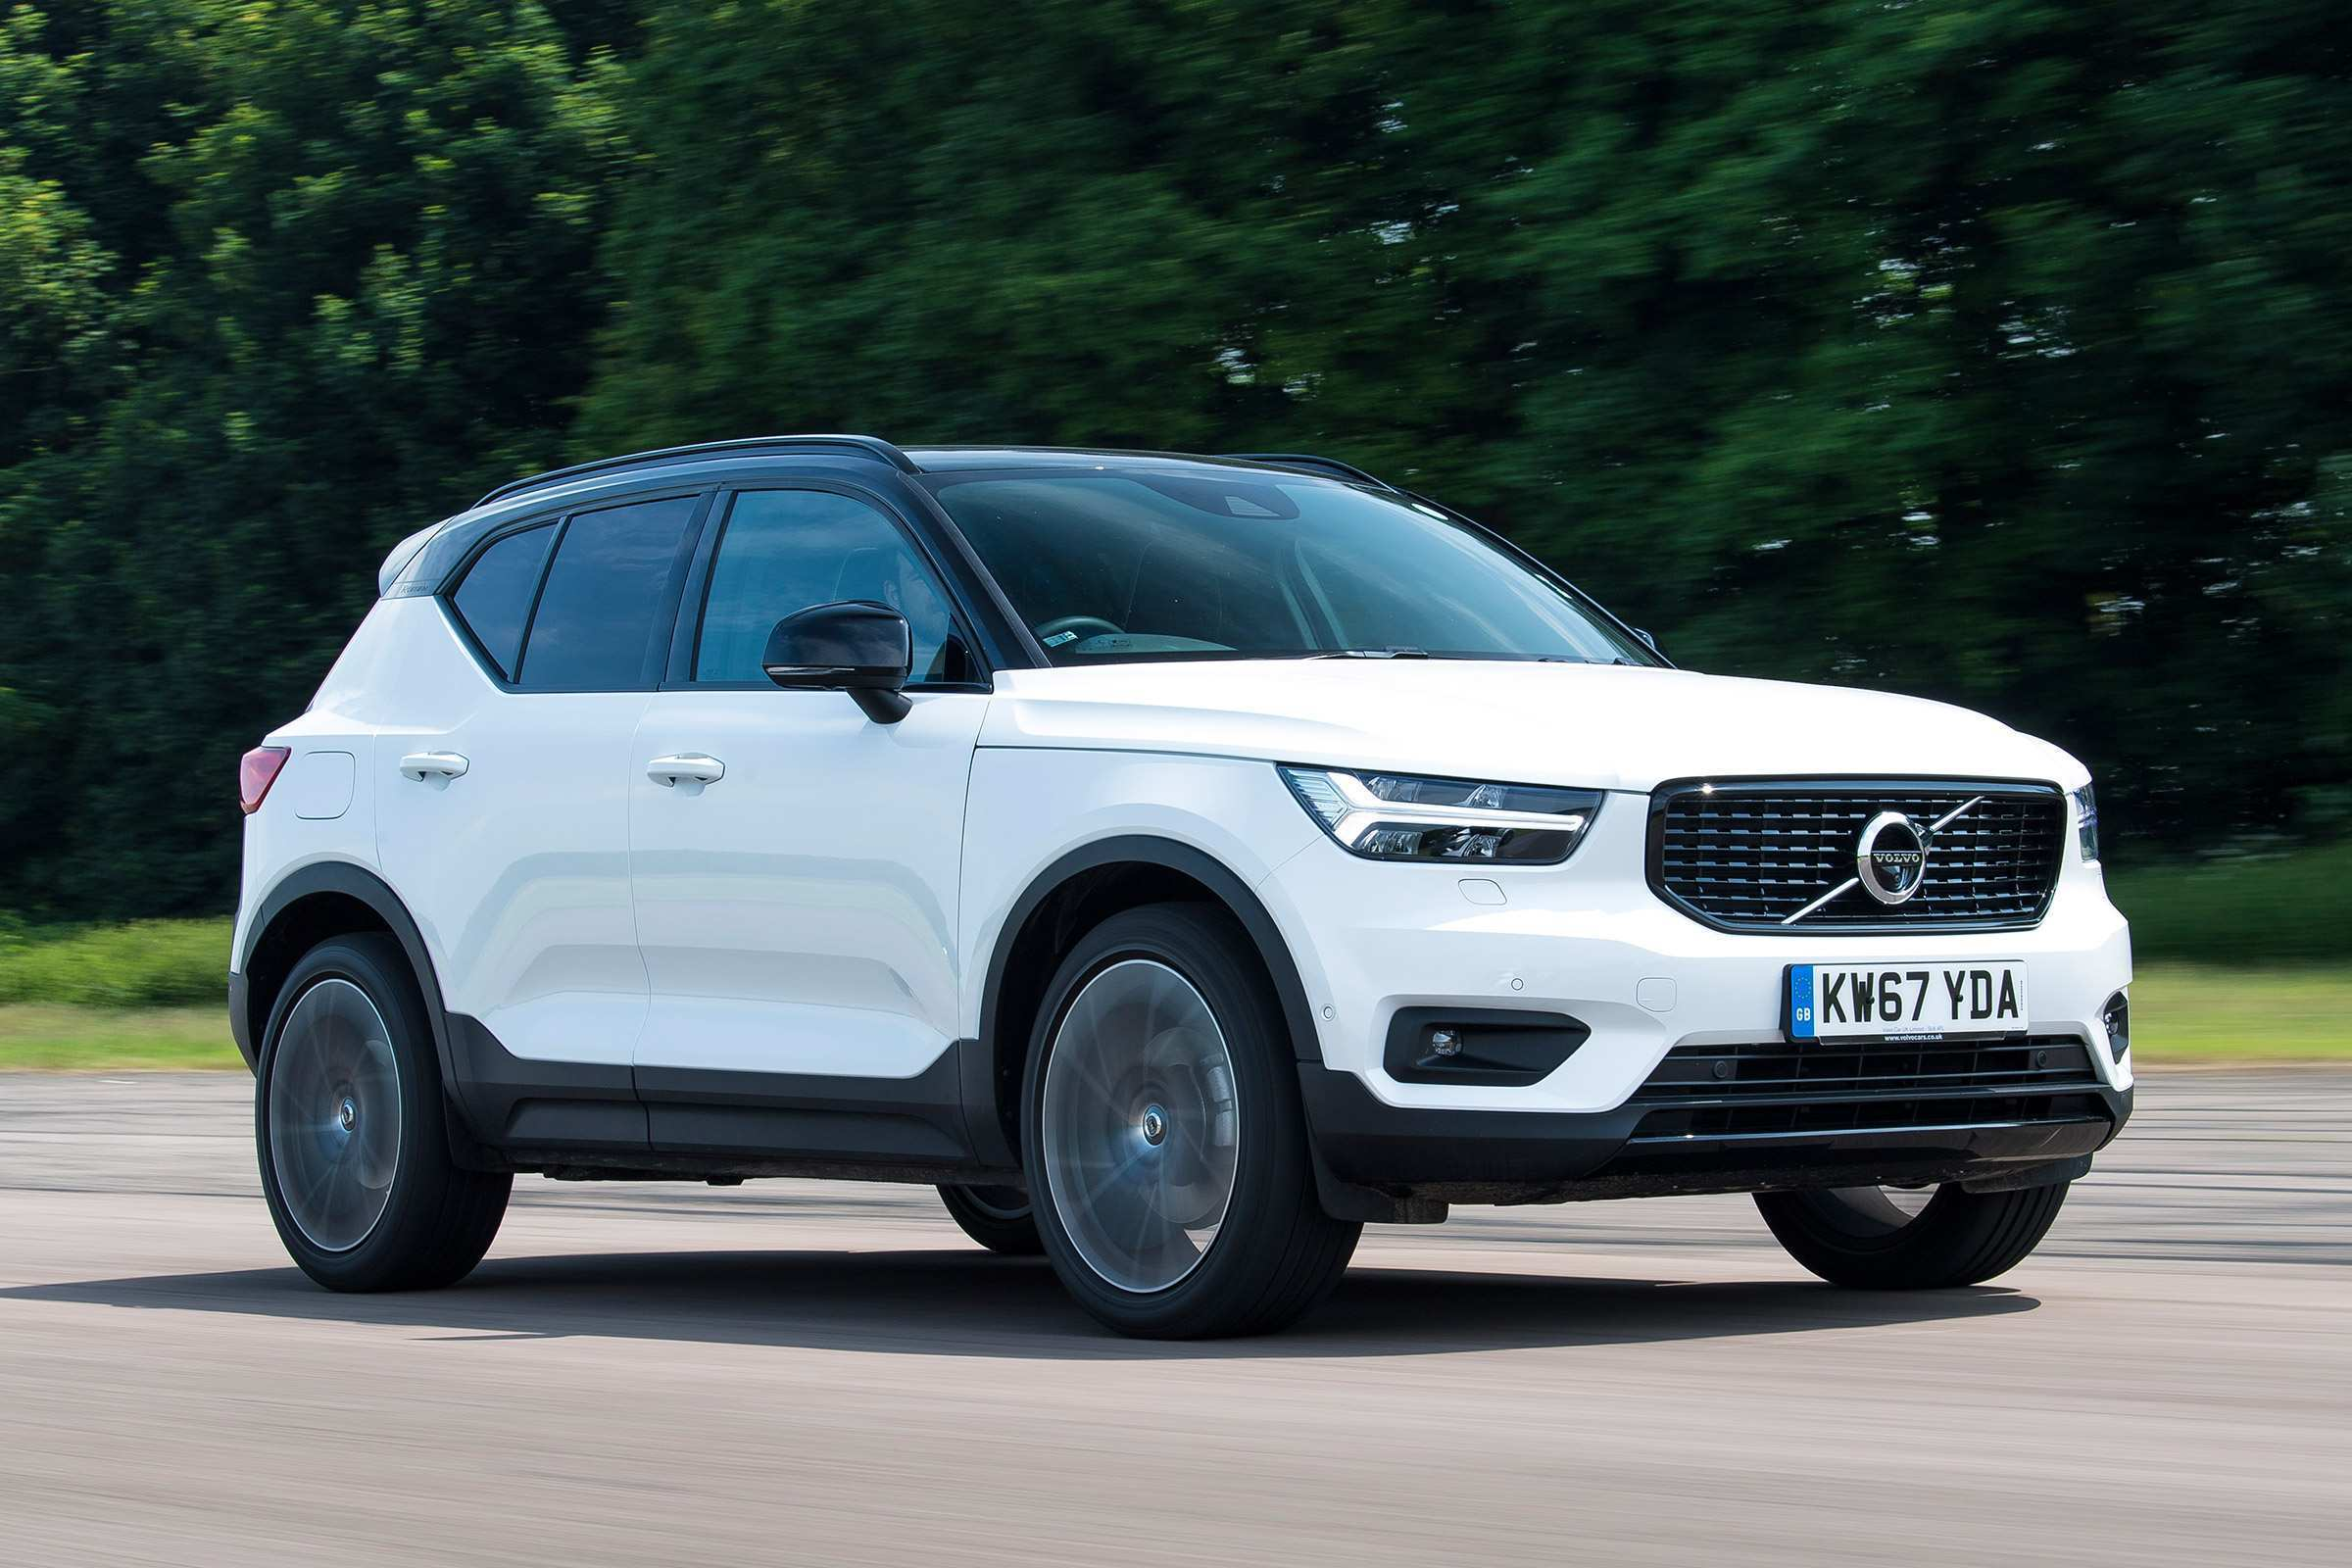 96 All New 2019 Volvo Xc40 Mpg Price And Release Date